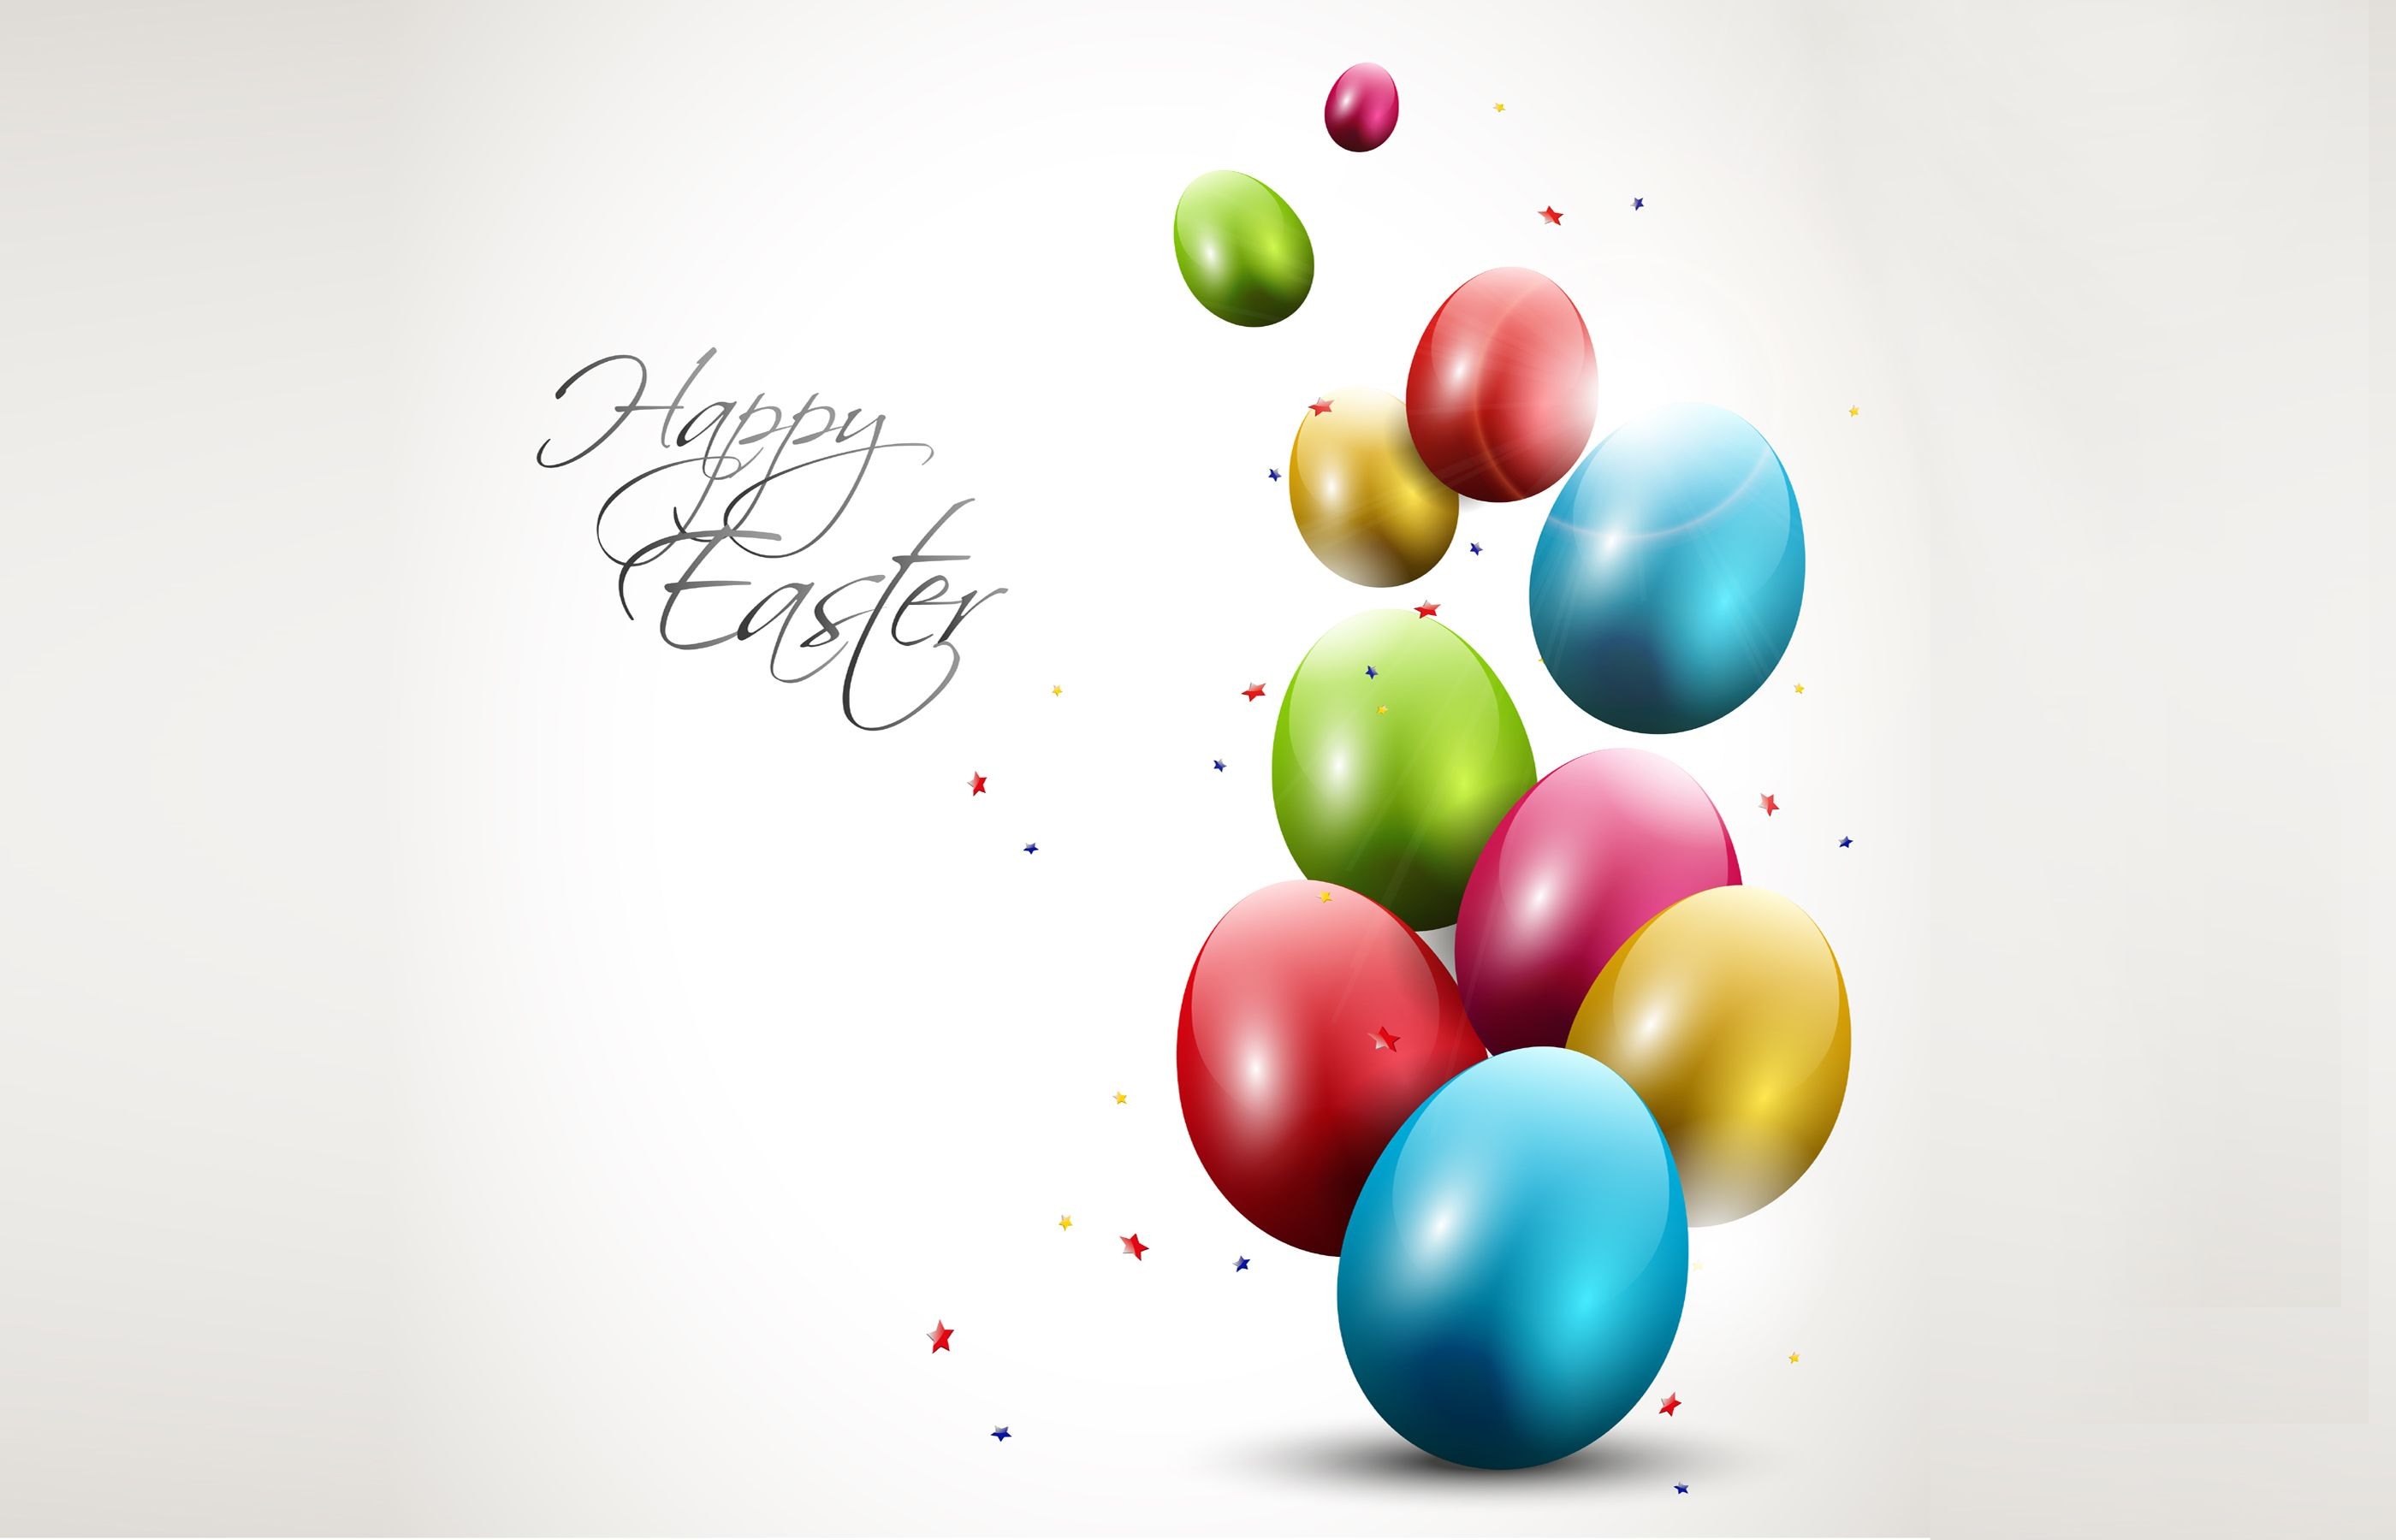 Easter Backgrounds 2016 download free | Wallpapers, Backgrounds ...